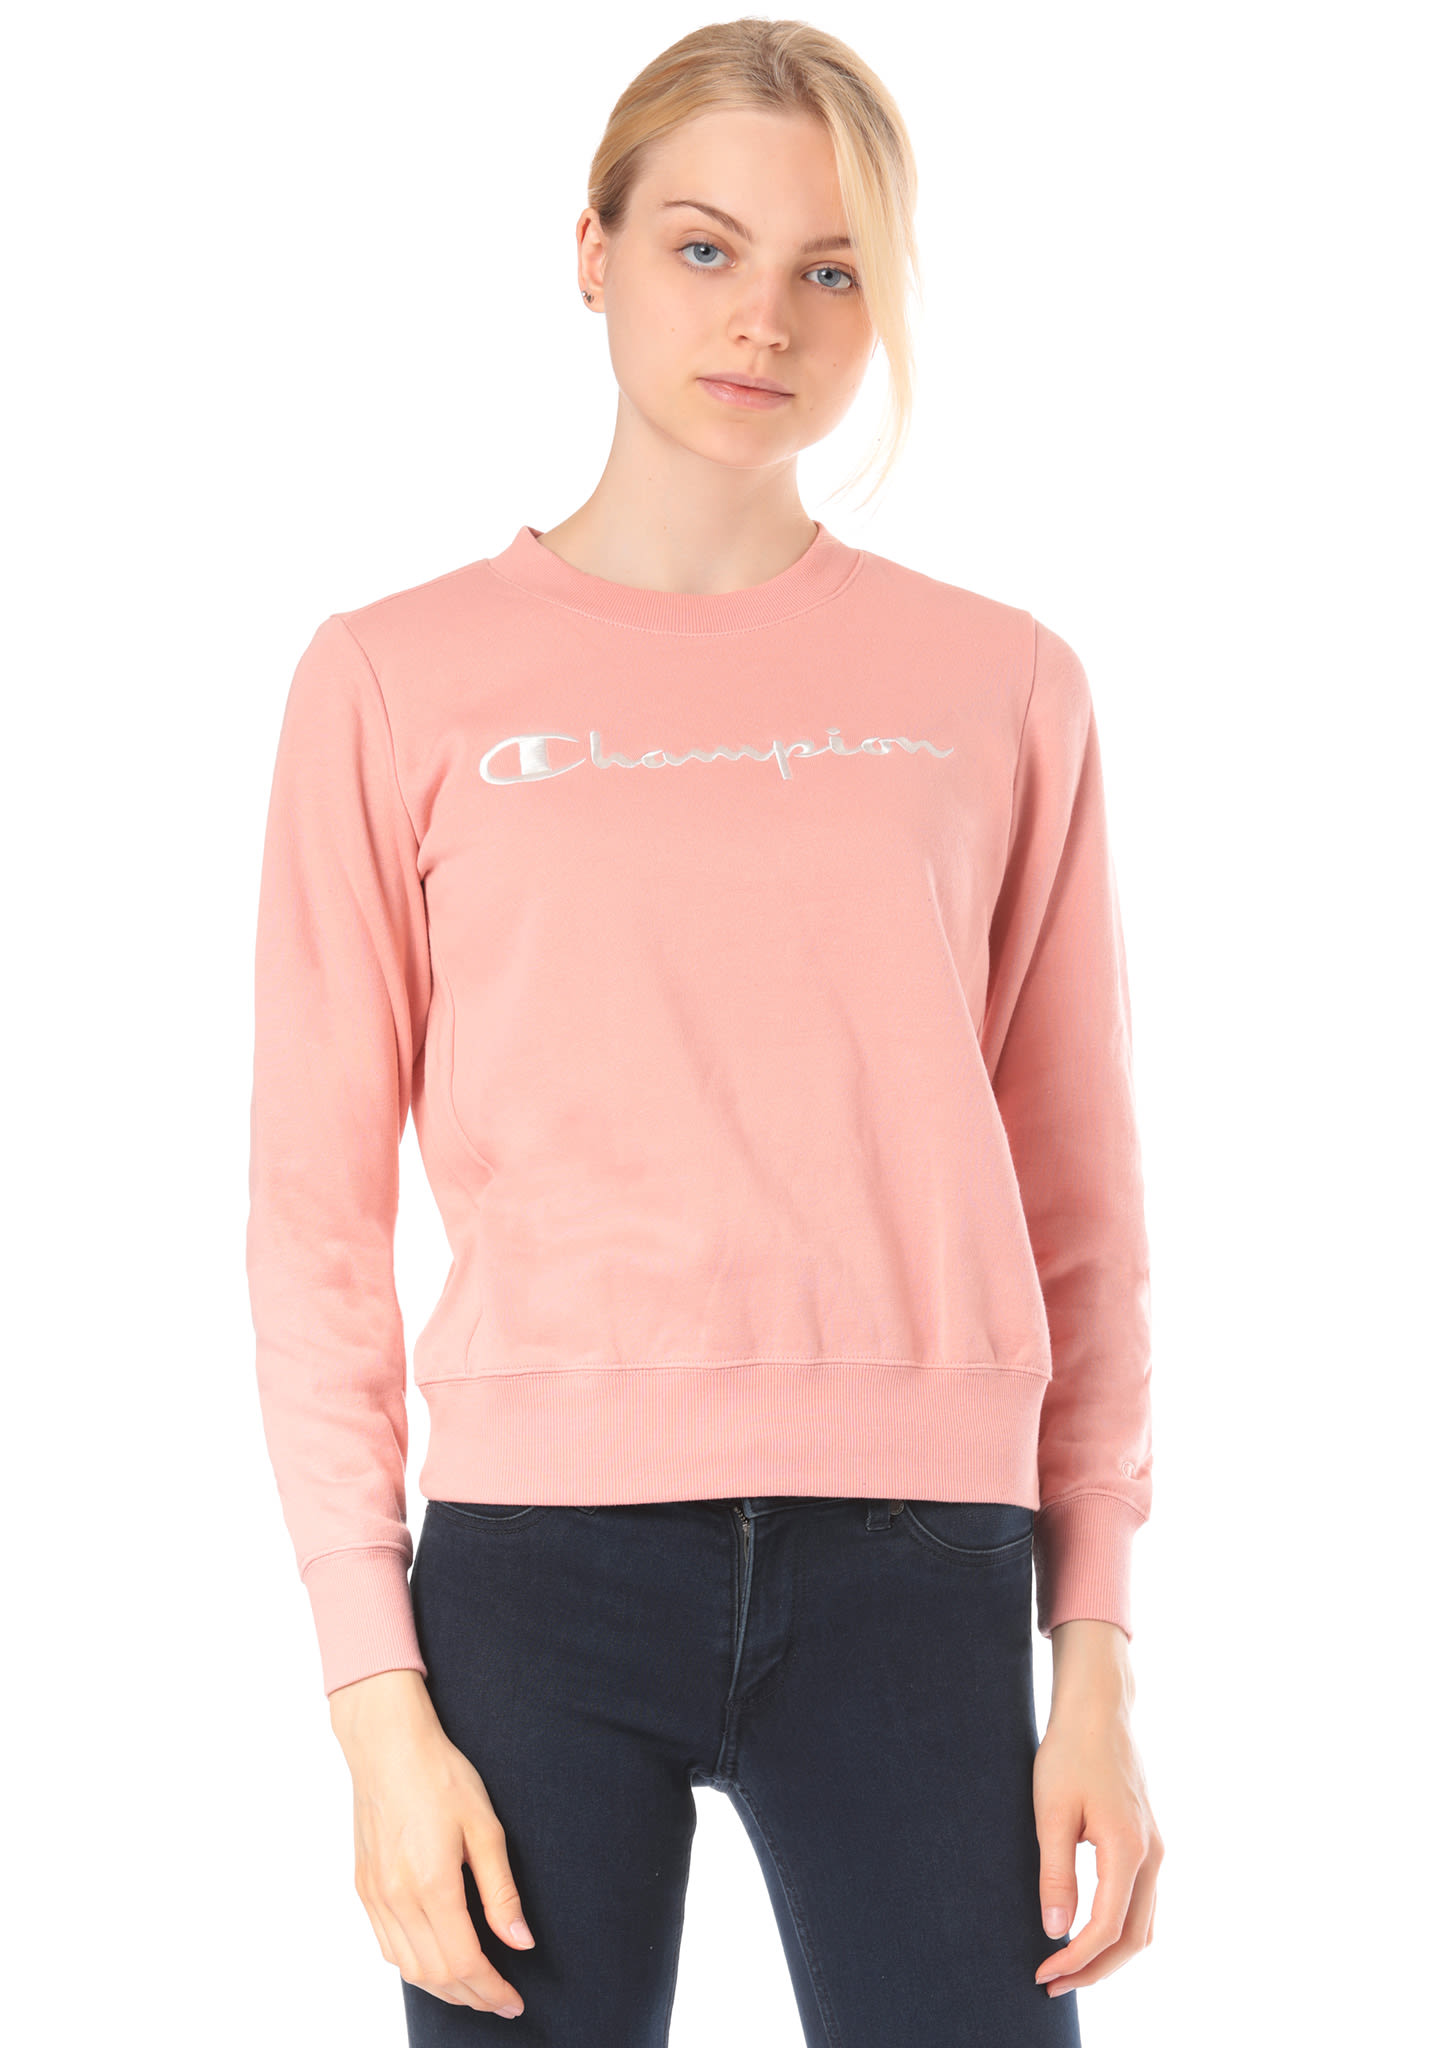 07b70e1a4a Champion Crewneck - Sweatshirt for Women - Pink - Planet Sports